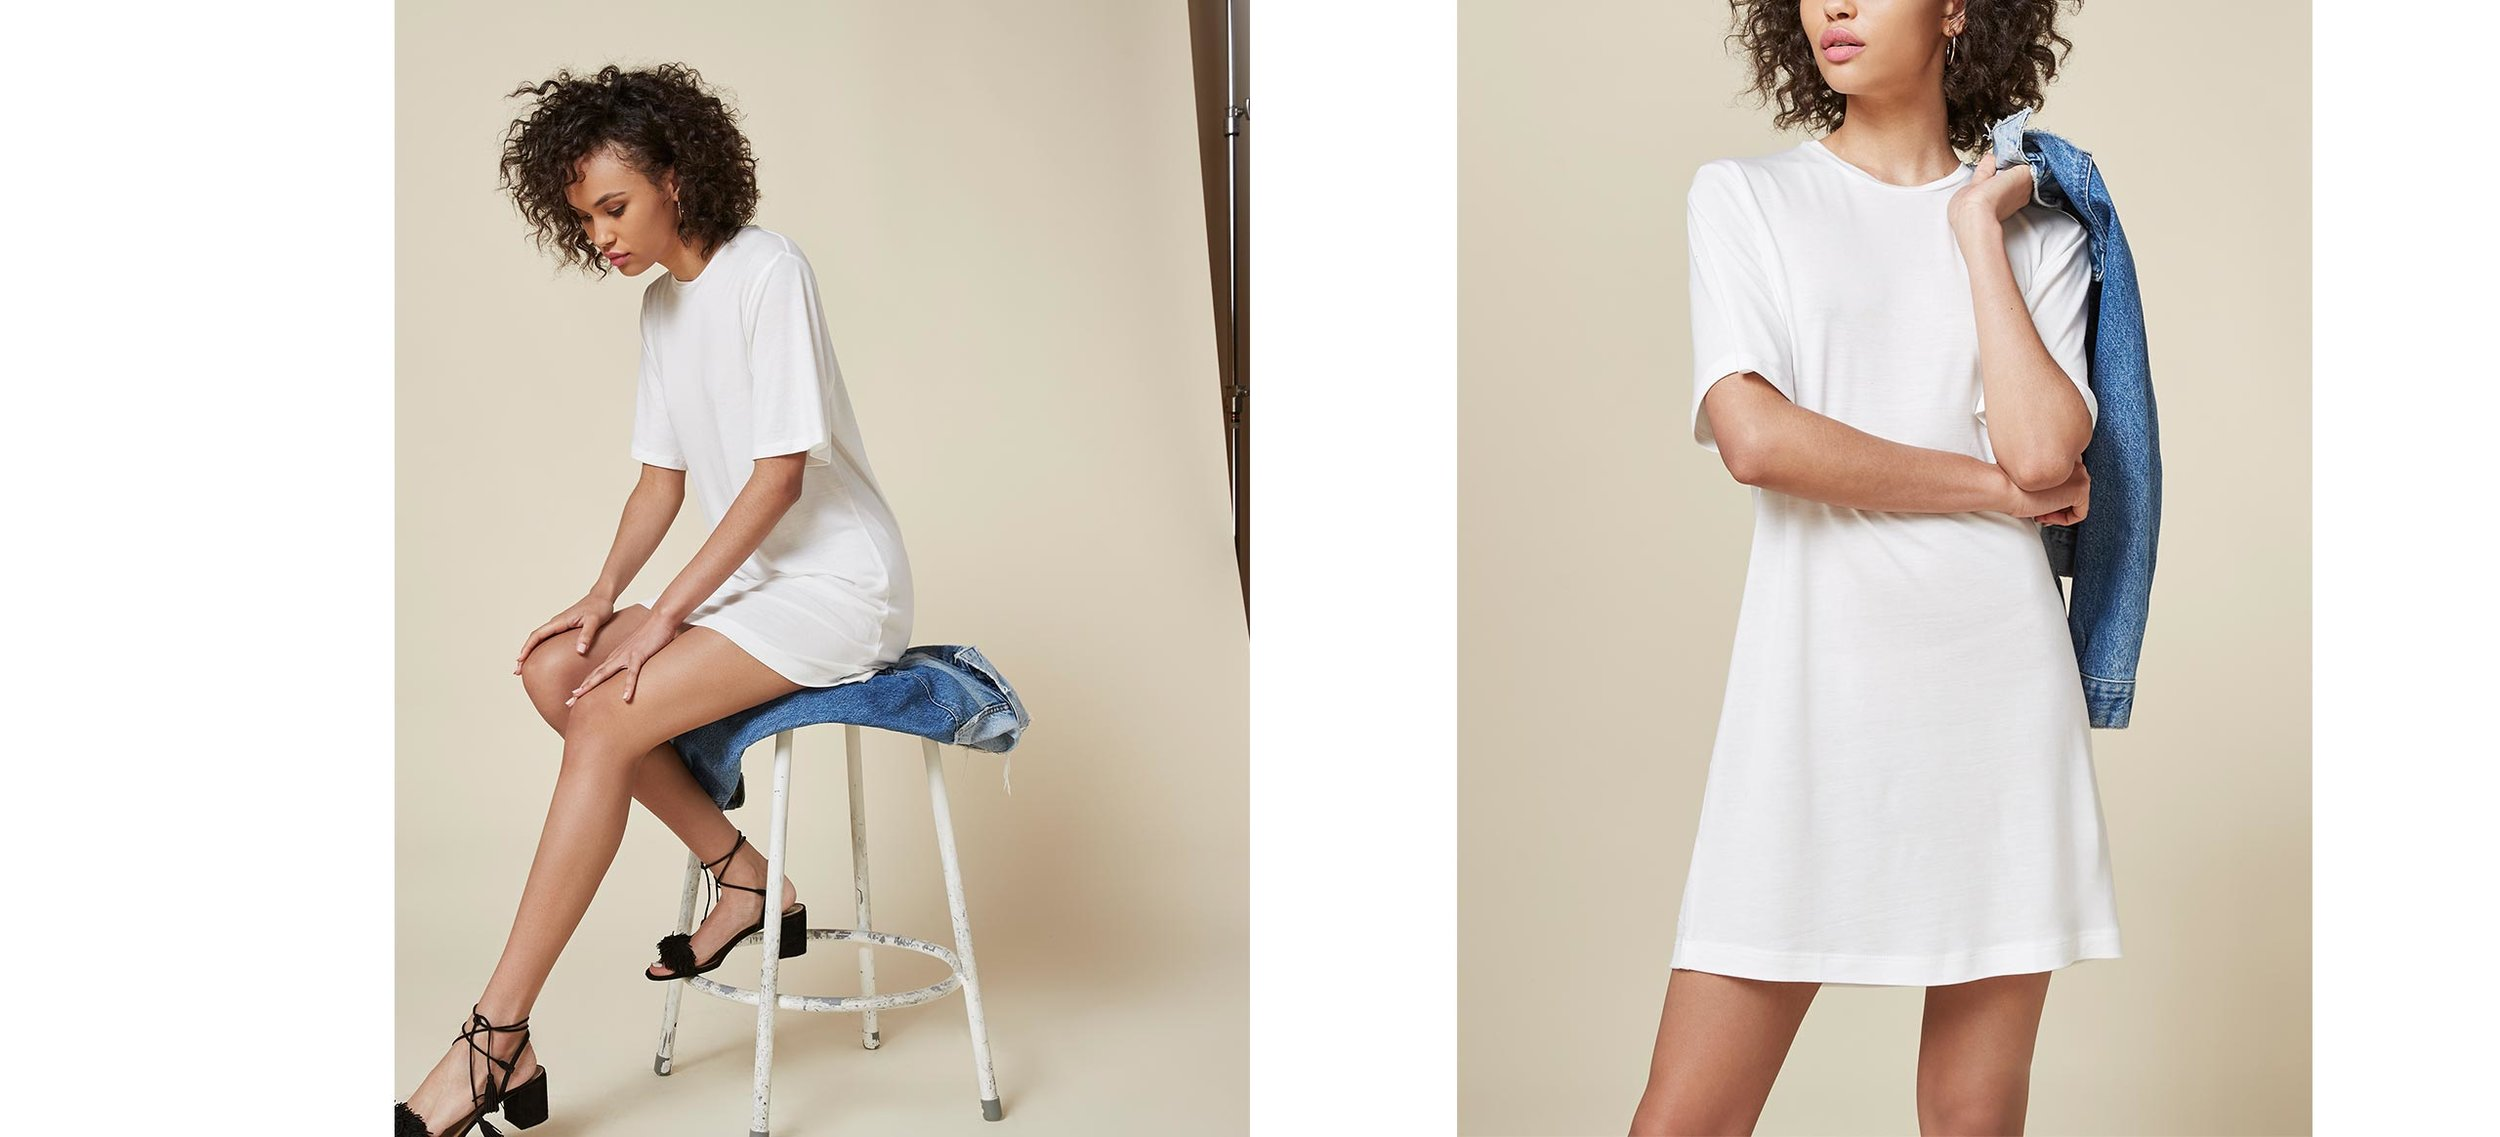 that everyday white dress I've been looking to throw on when running late  Dozer Dress / Reformation / $41